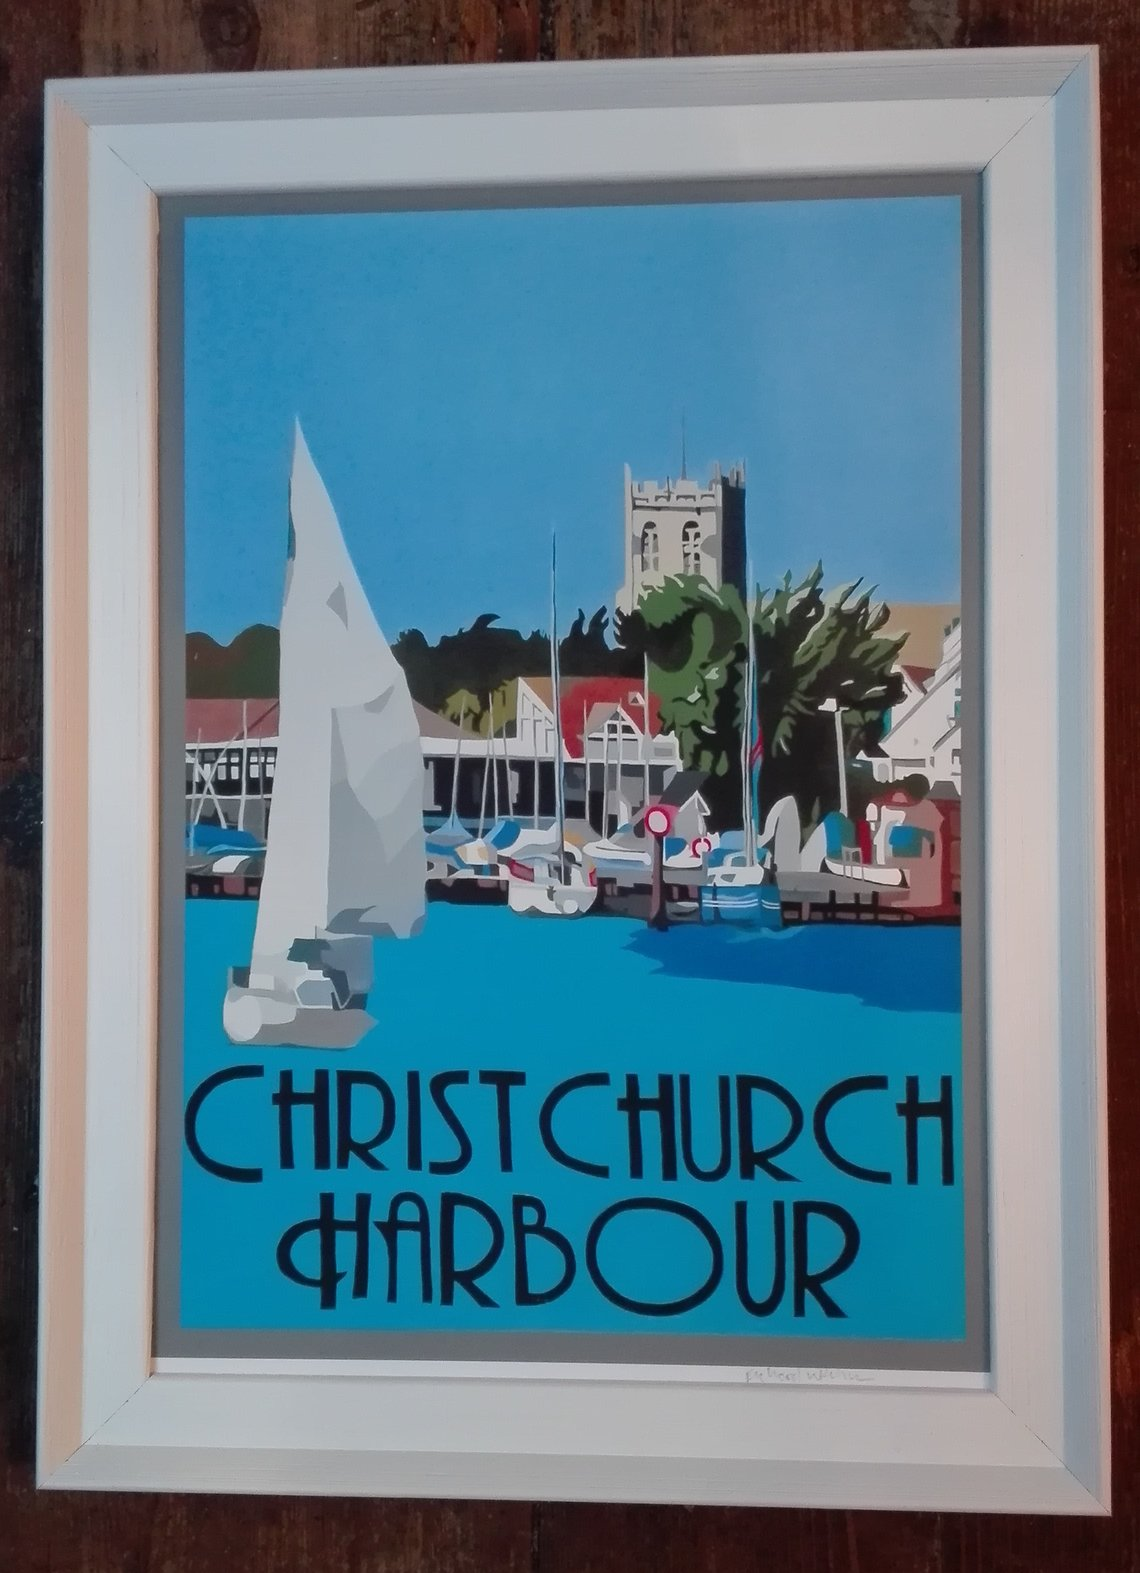 hanging chair christchurch gravity recliner outdoor uk vintage style framed harbour print